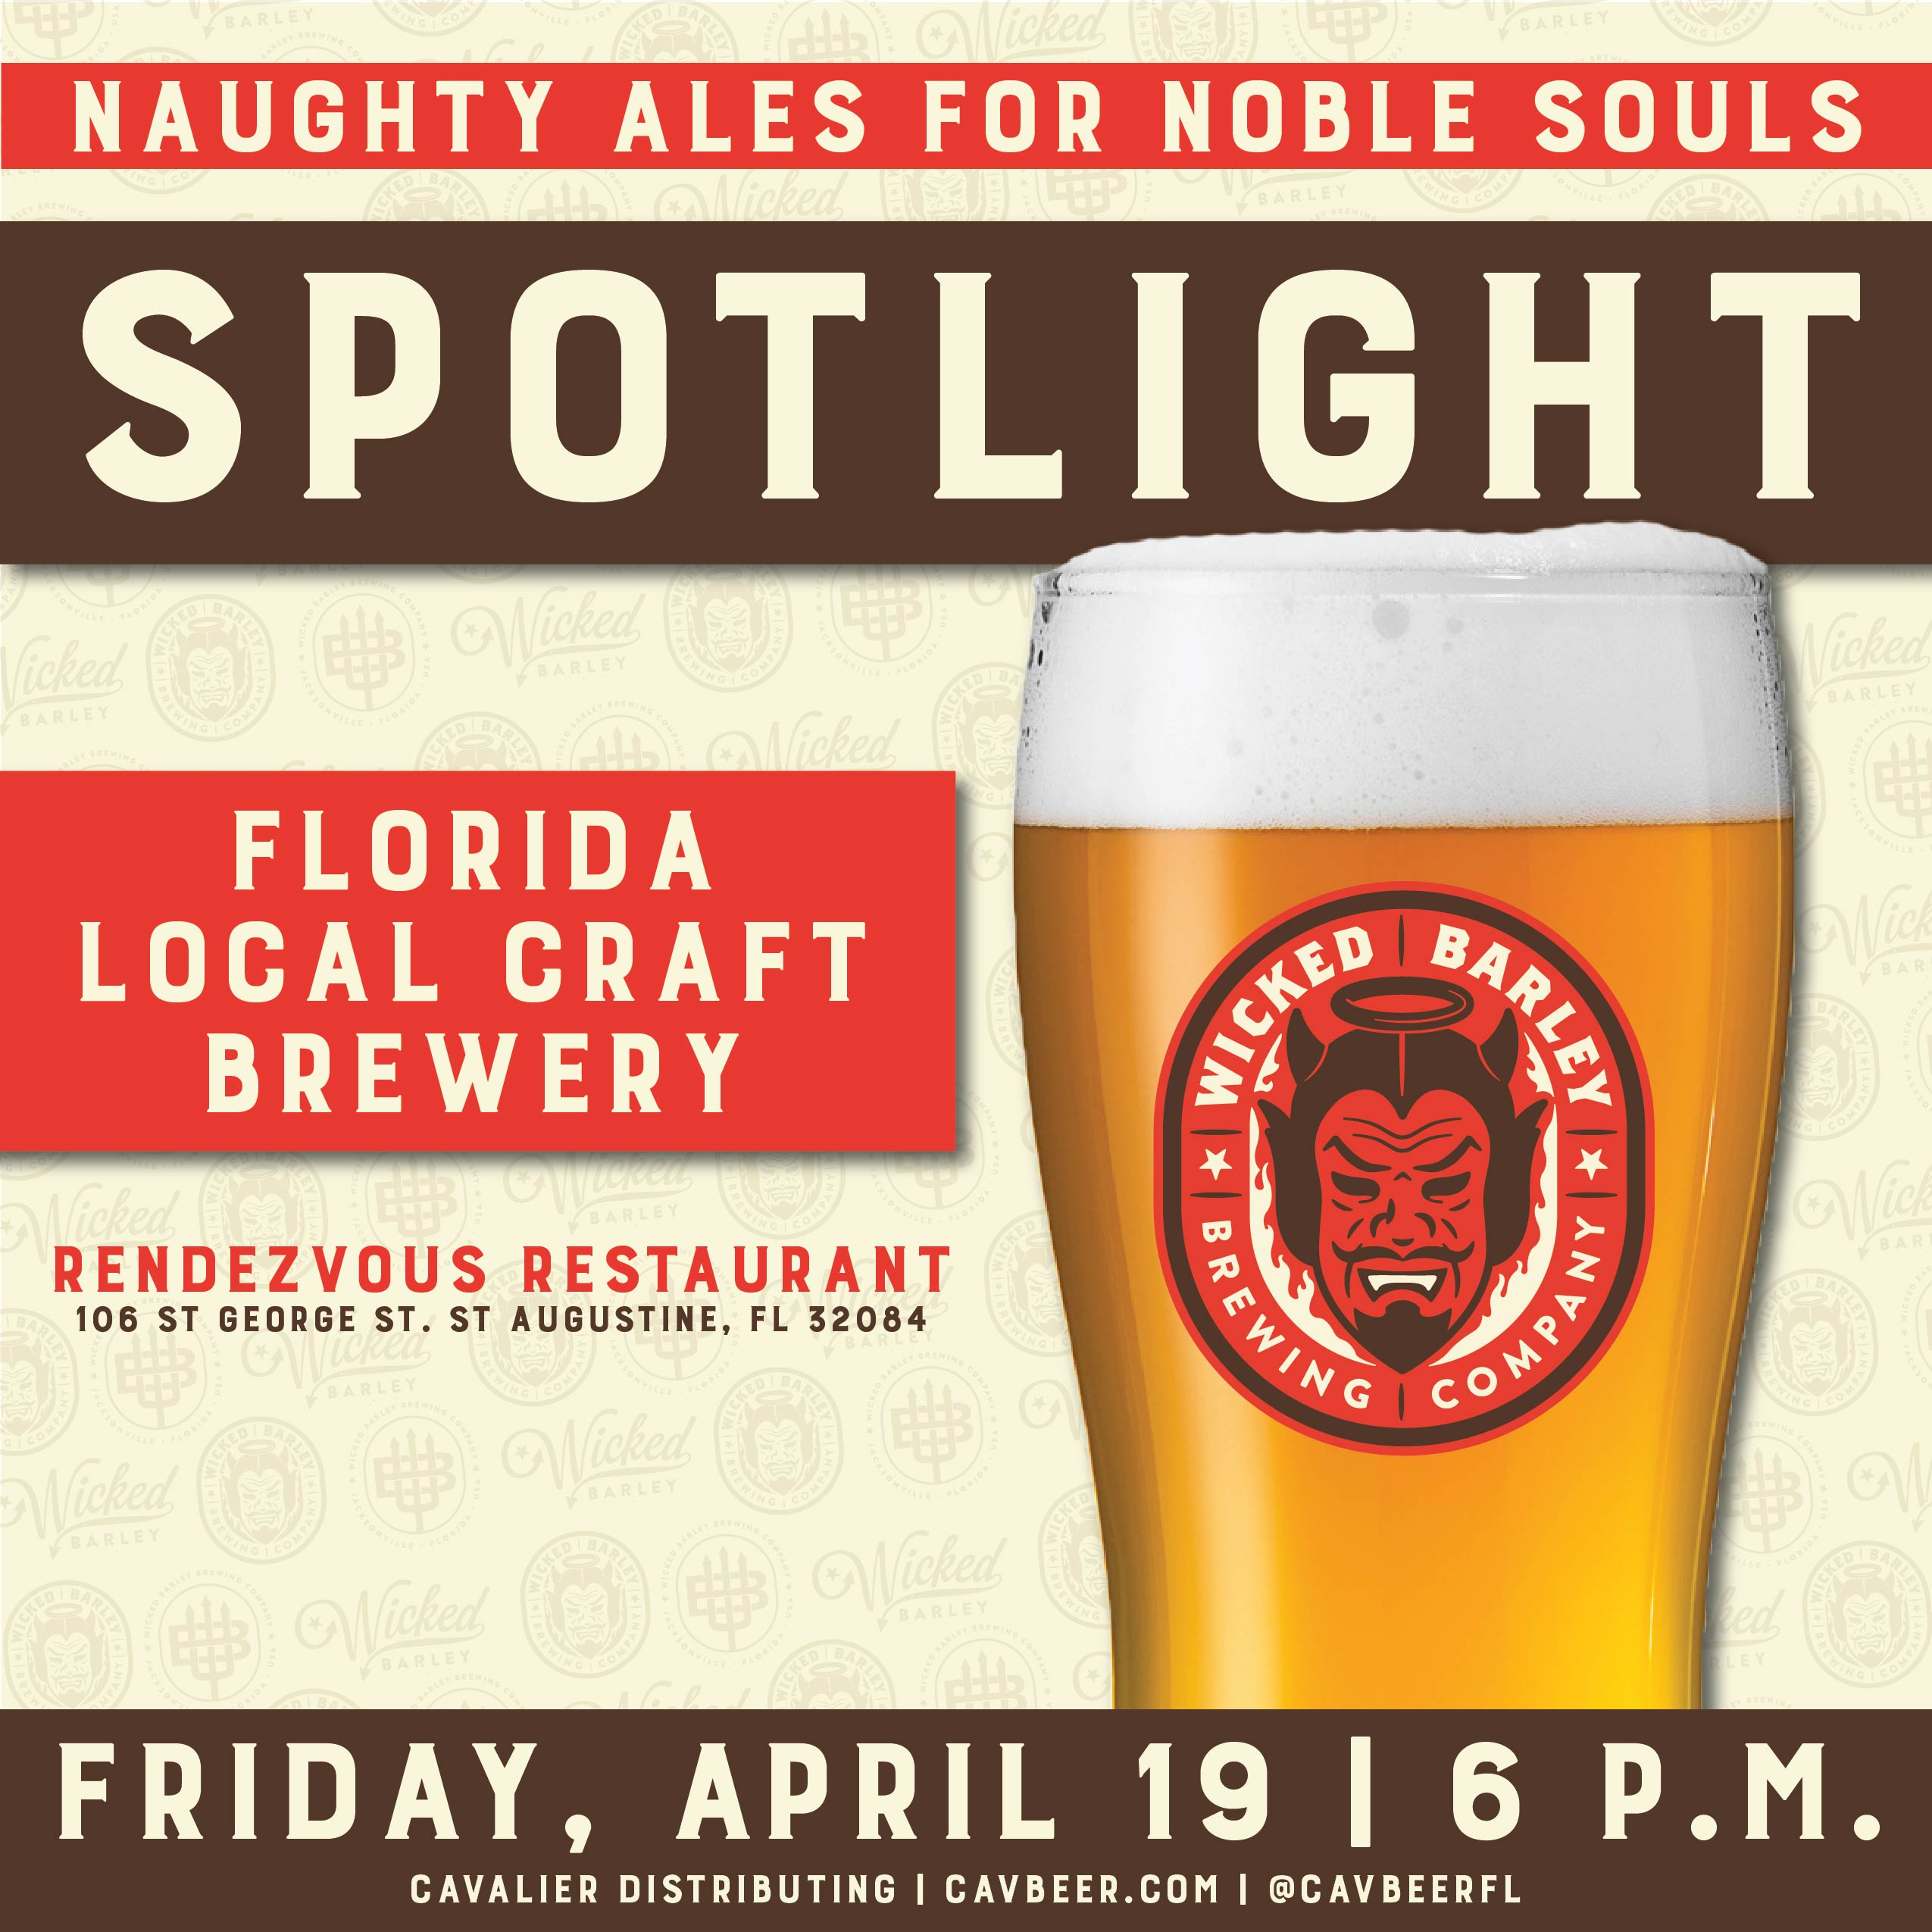 Wicked Barley Spotlight @ Rendezvous Restaurant